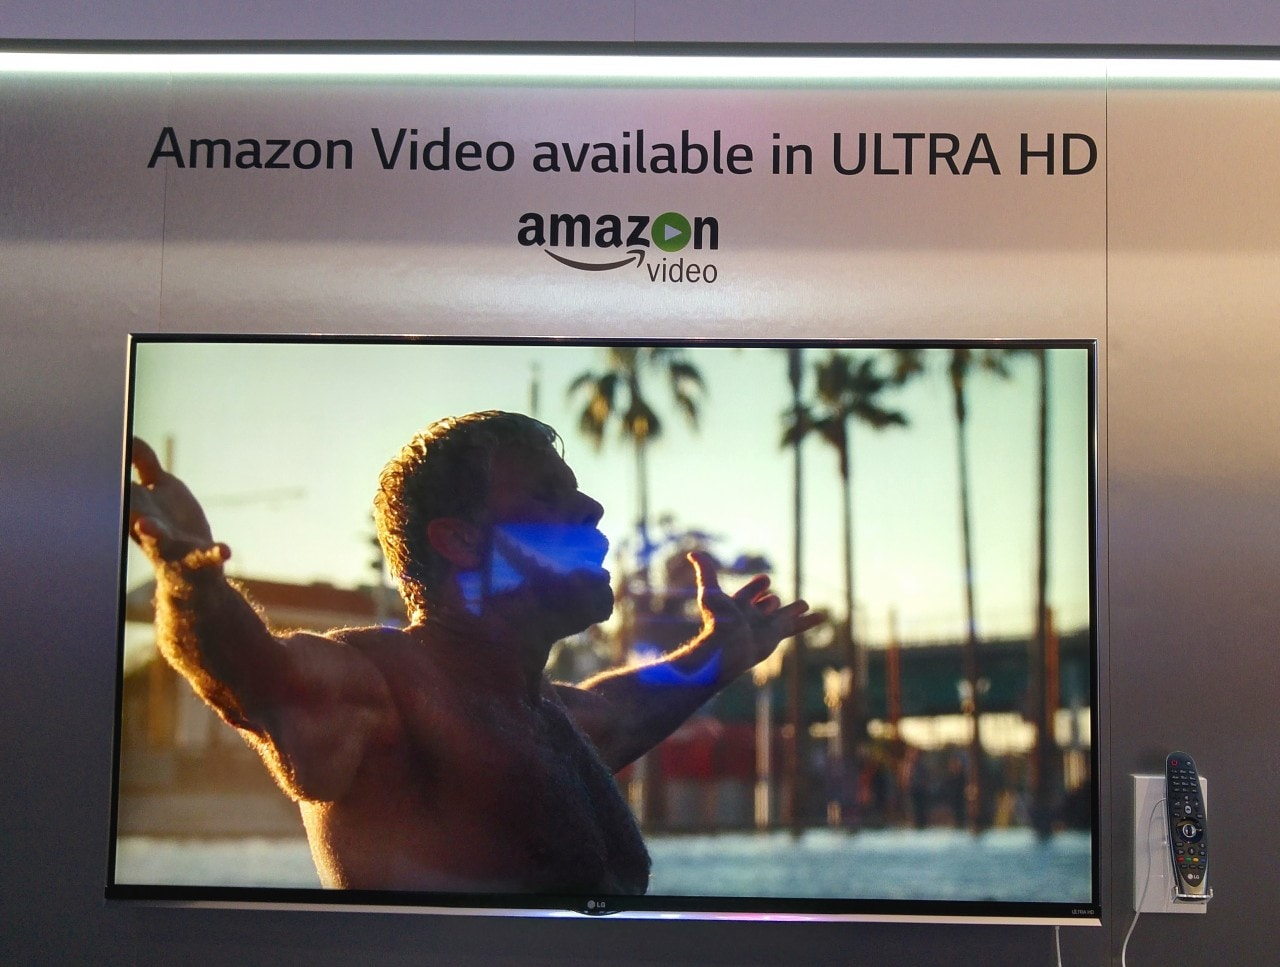 LG ed Amazon insieme per lo streaming HDR sui TV WebOS